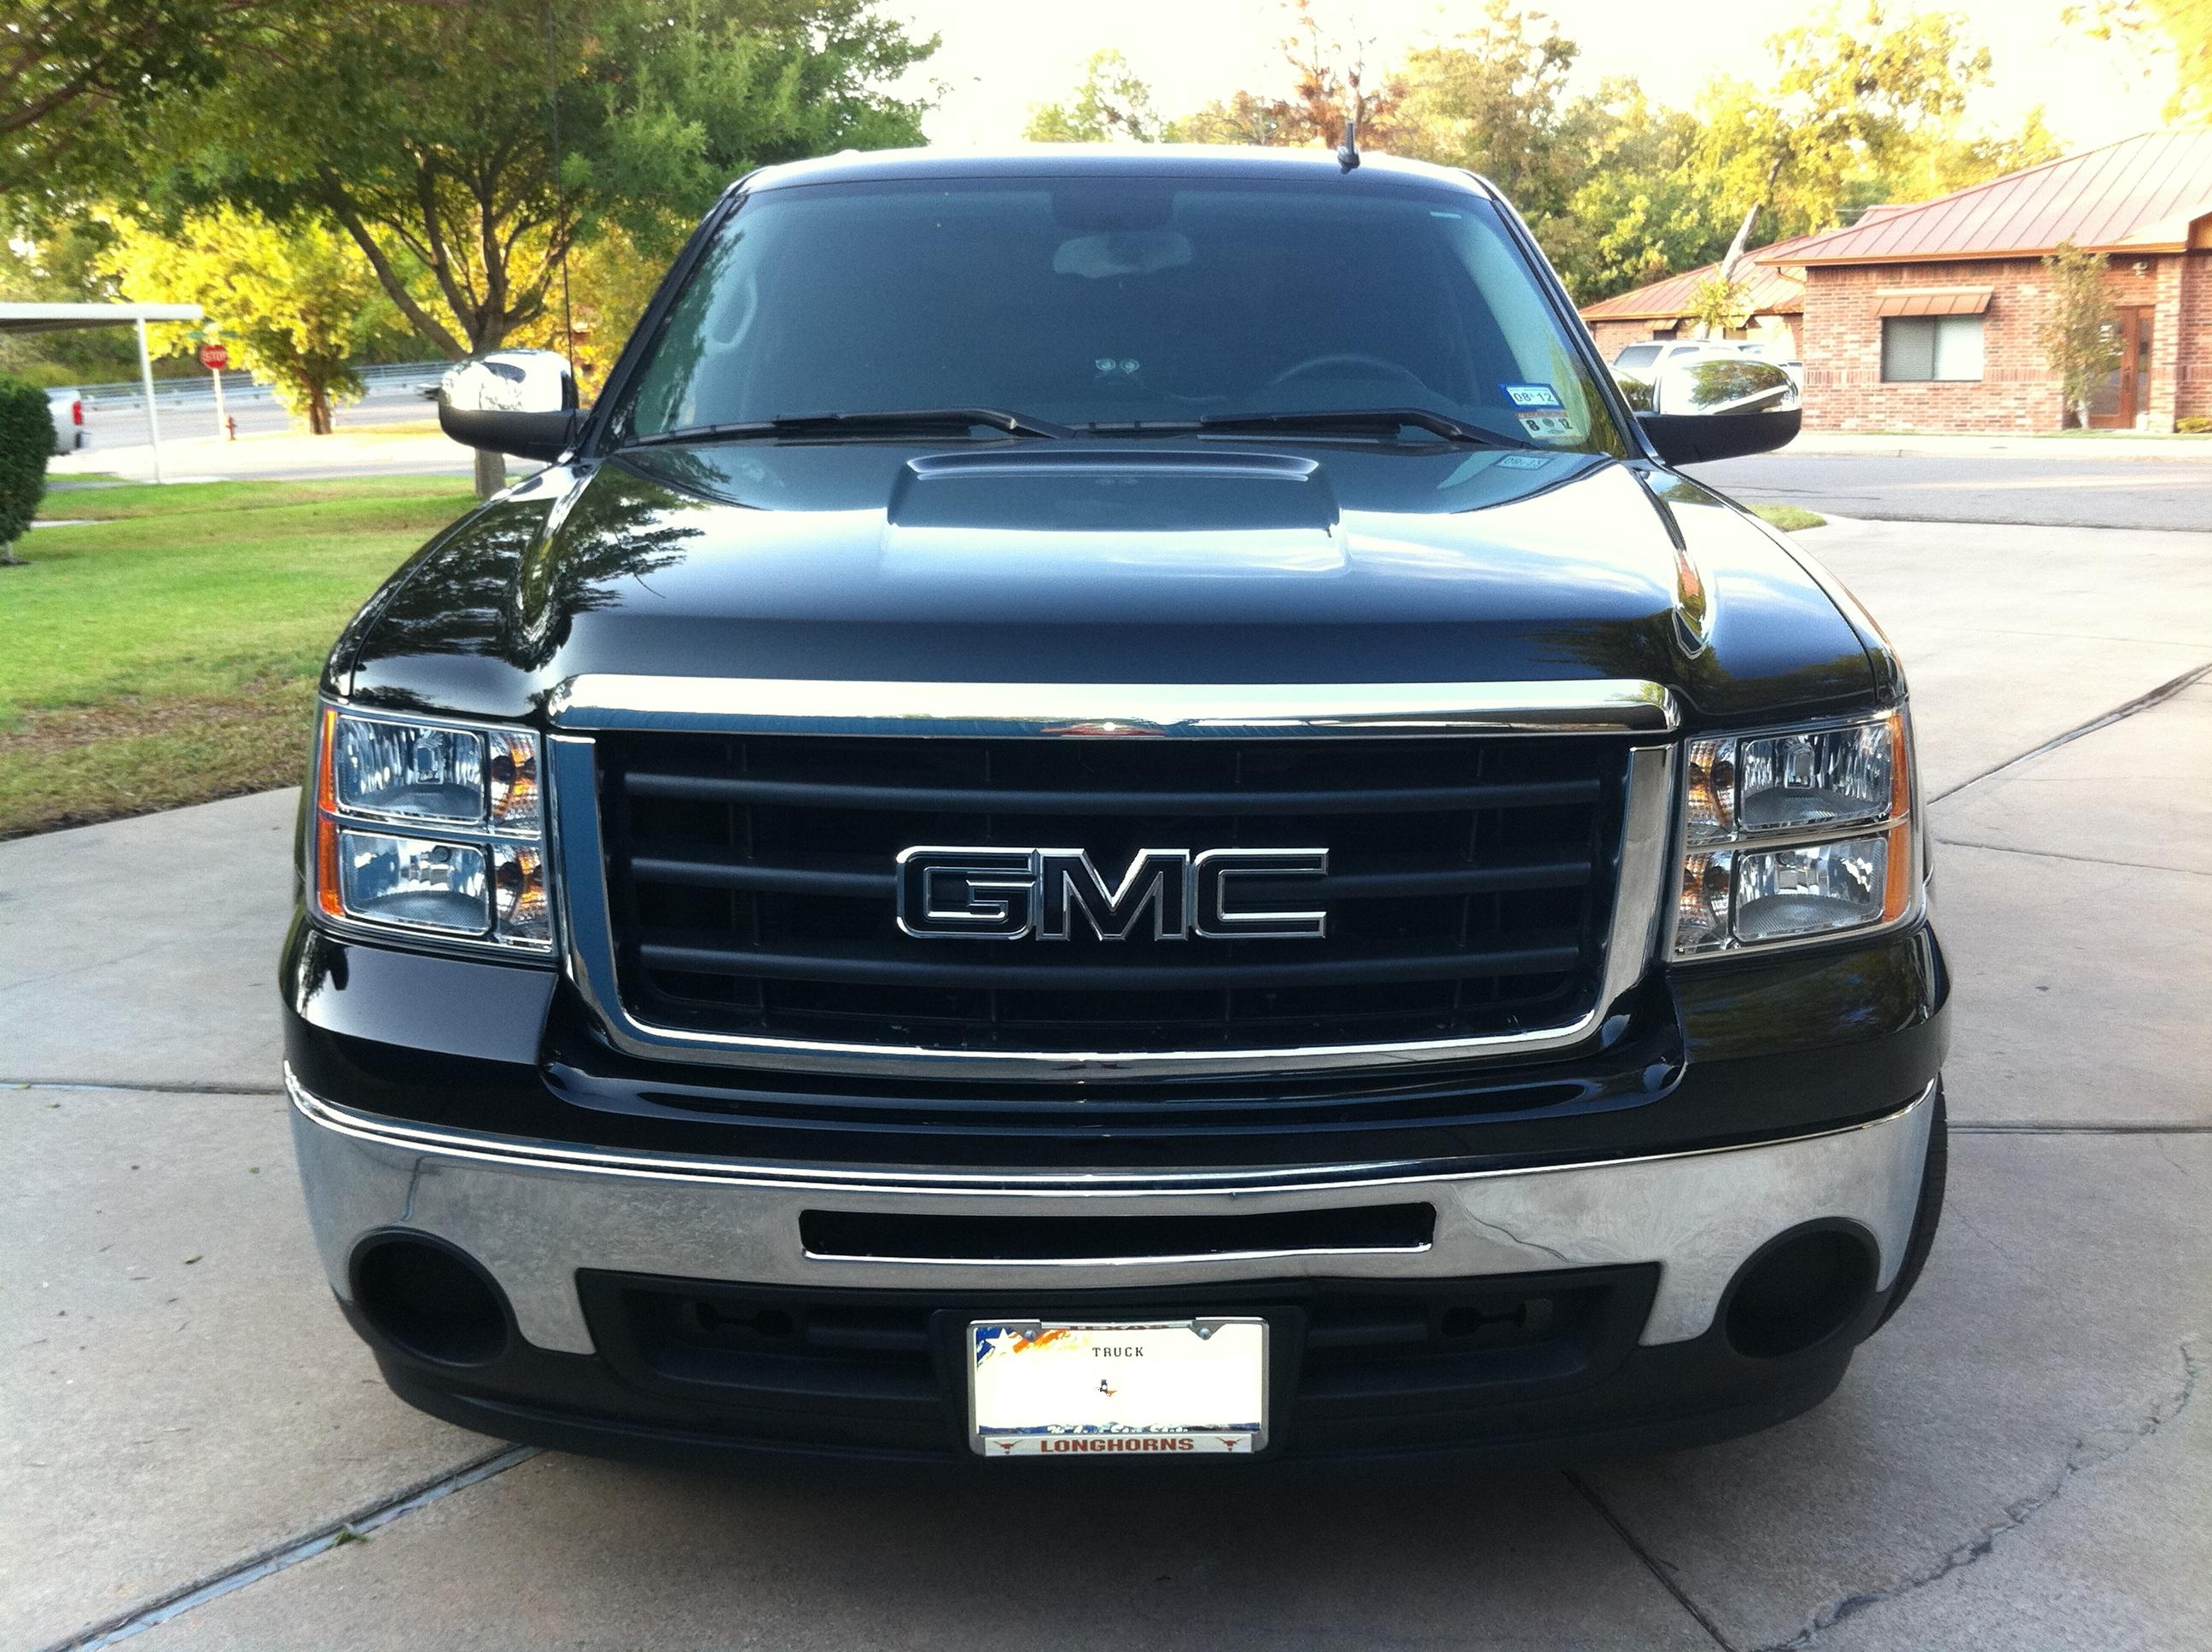 blitzjones 2009 gmc sierra 1500 crew cabsle specs photos modification info at cardomain. Black Bedroom Furniture Sets. Home Design Ideas